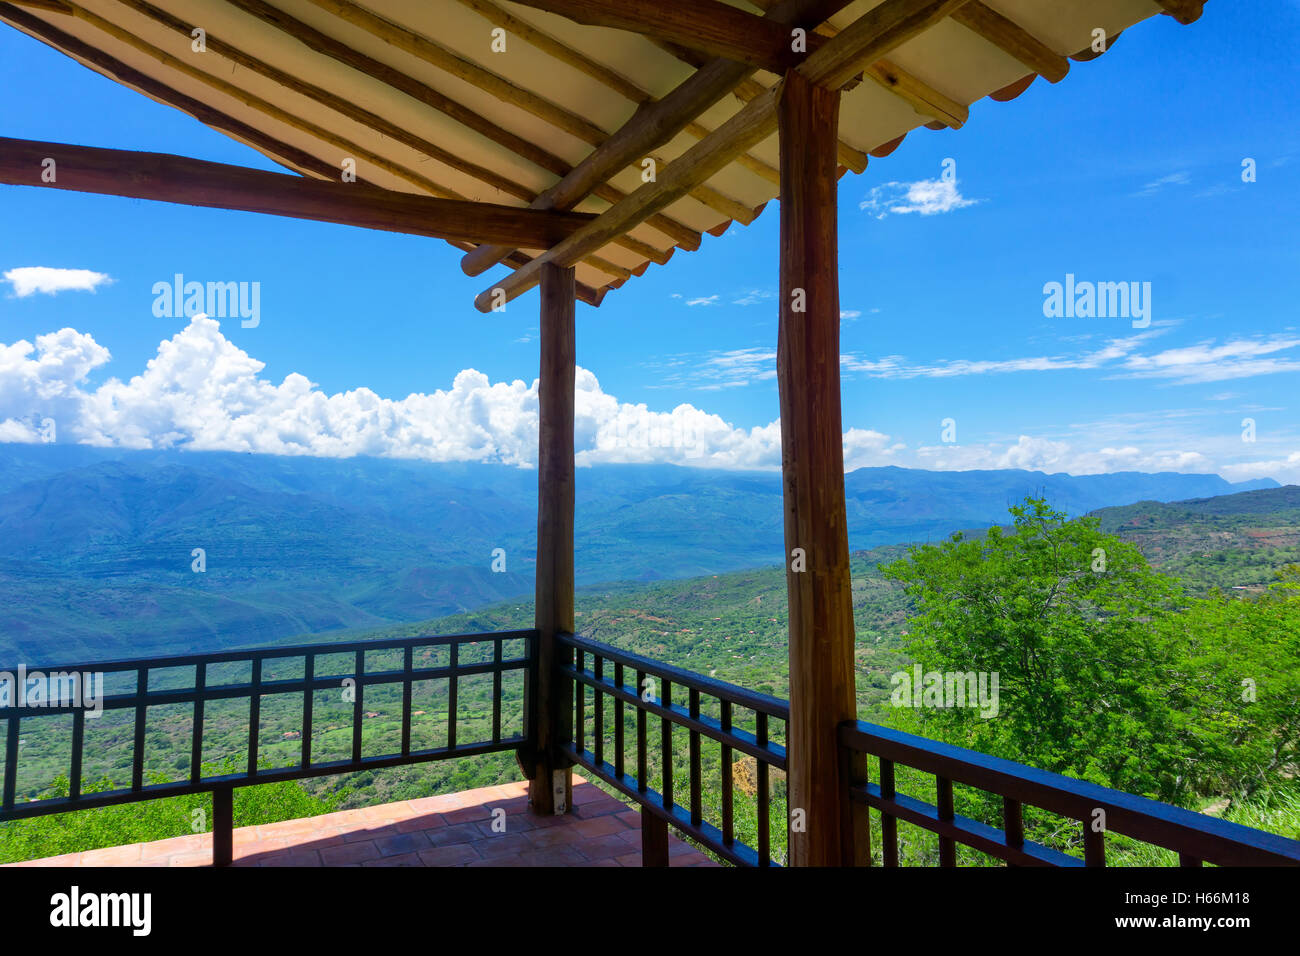 Covered viewpoint on the outskirts of Barichara, Colombia - Stock Image